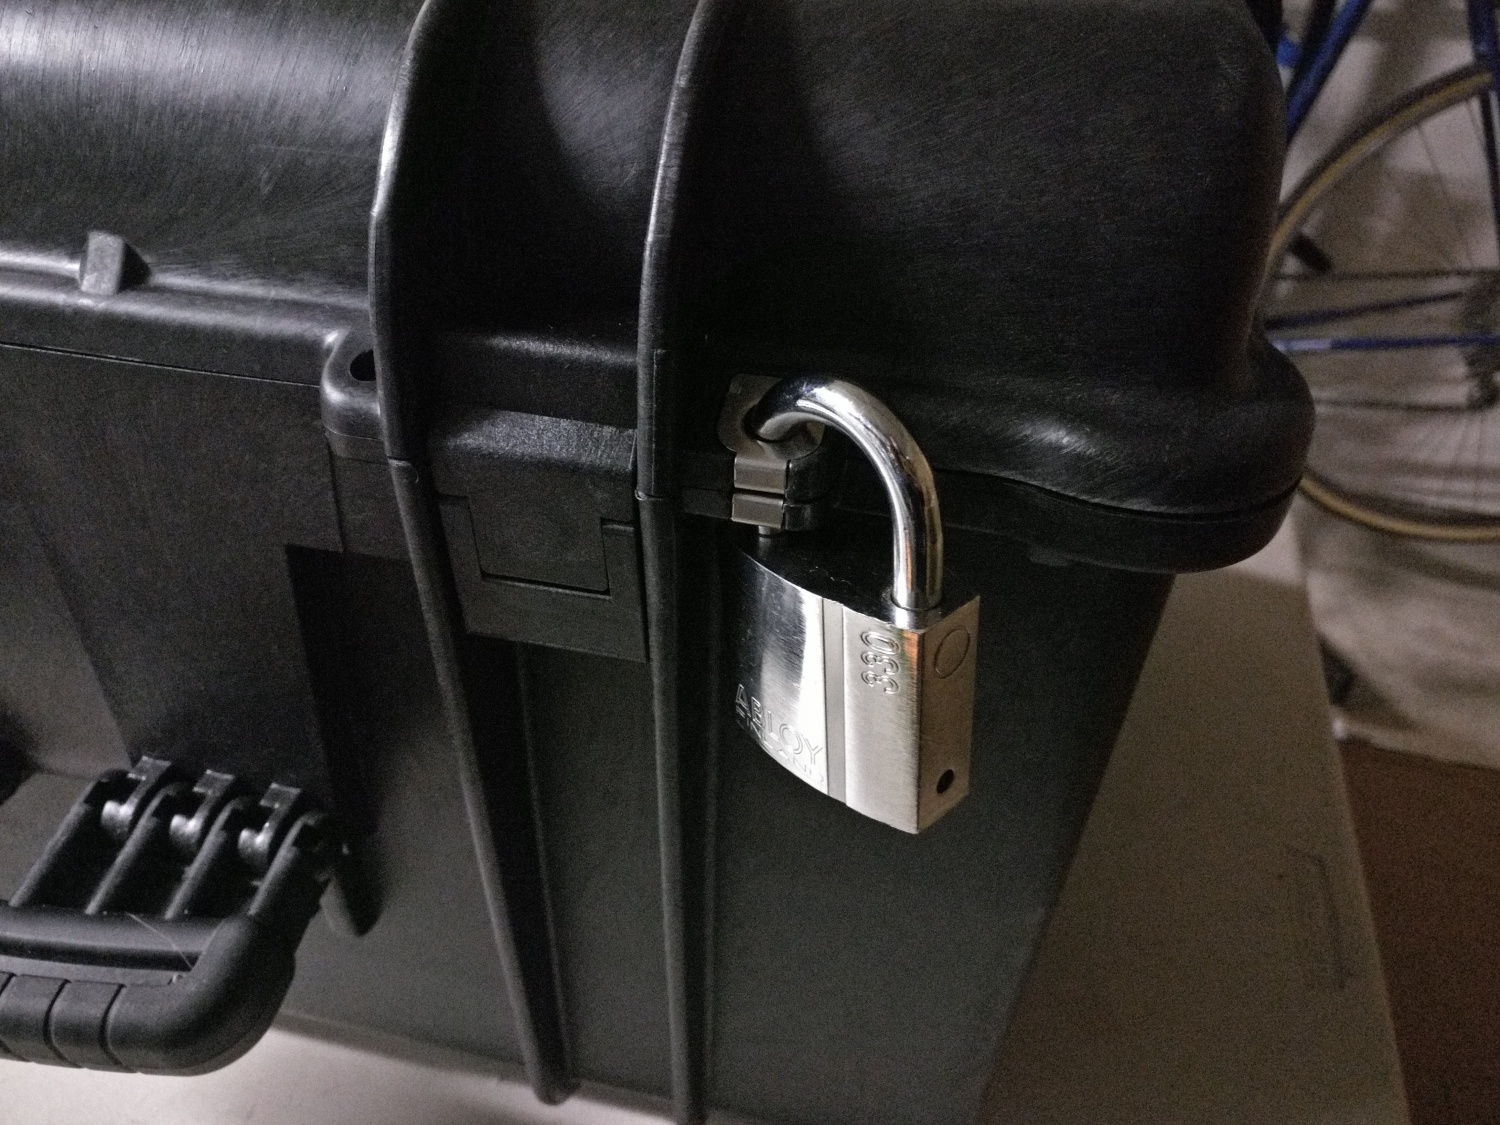 Abloy Protec PL330 affixed to one of the metal-lined hasps on the Explorer Case 5833